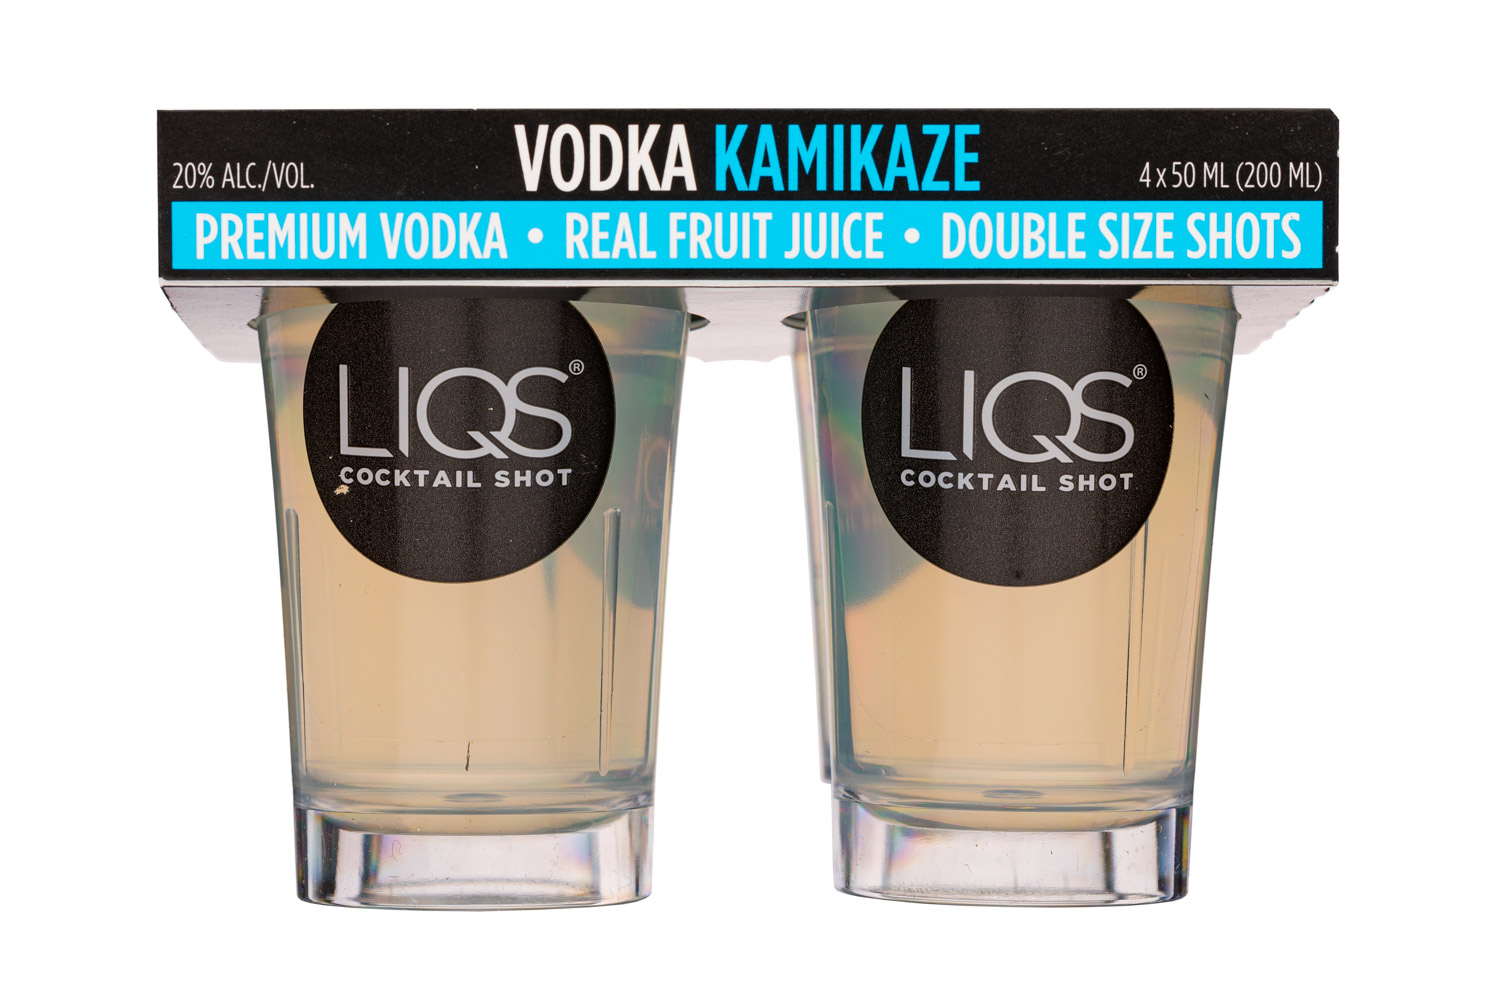 Vodka Kamikaze Shots